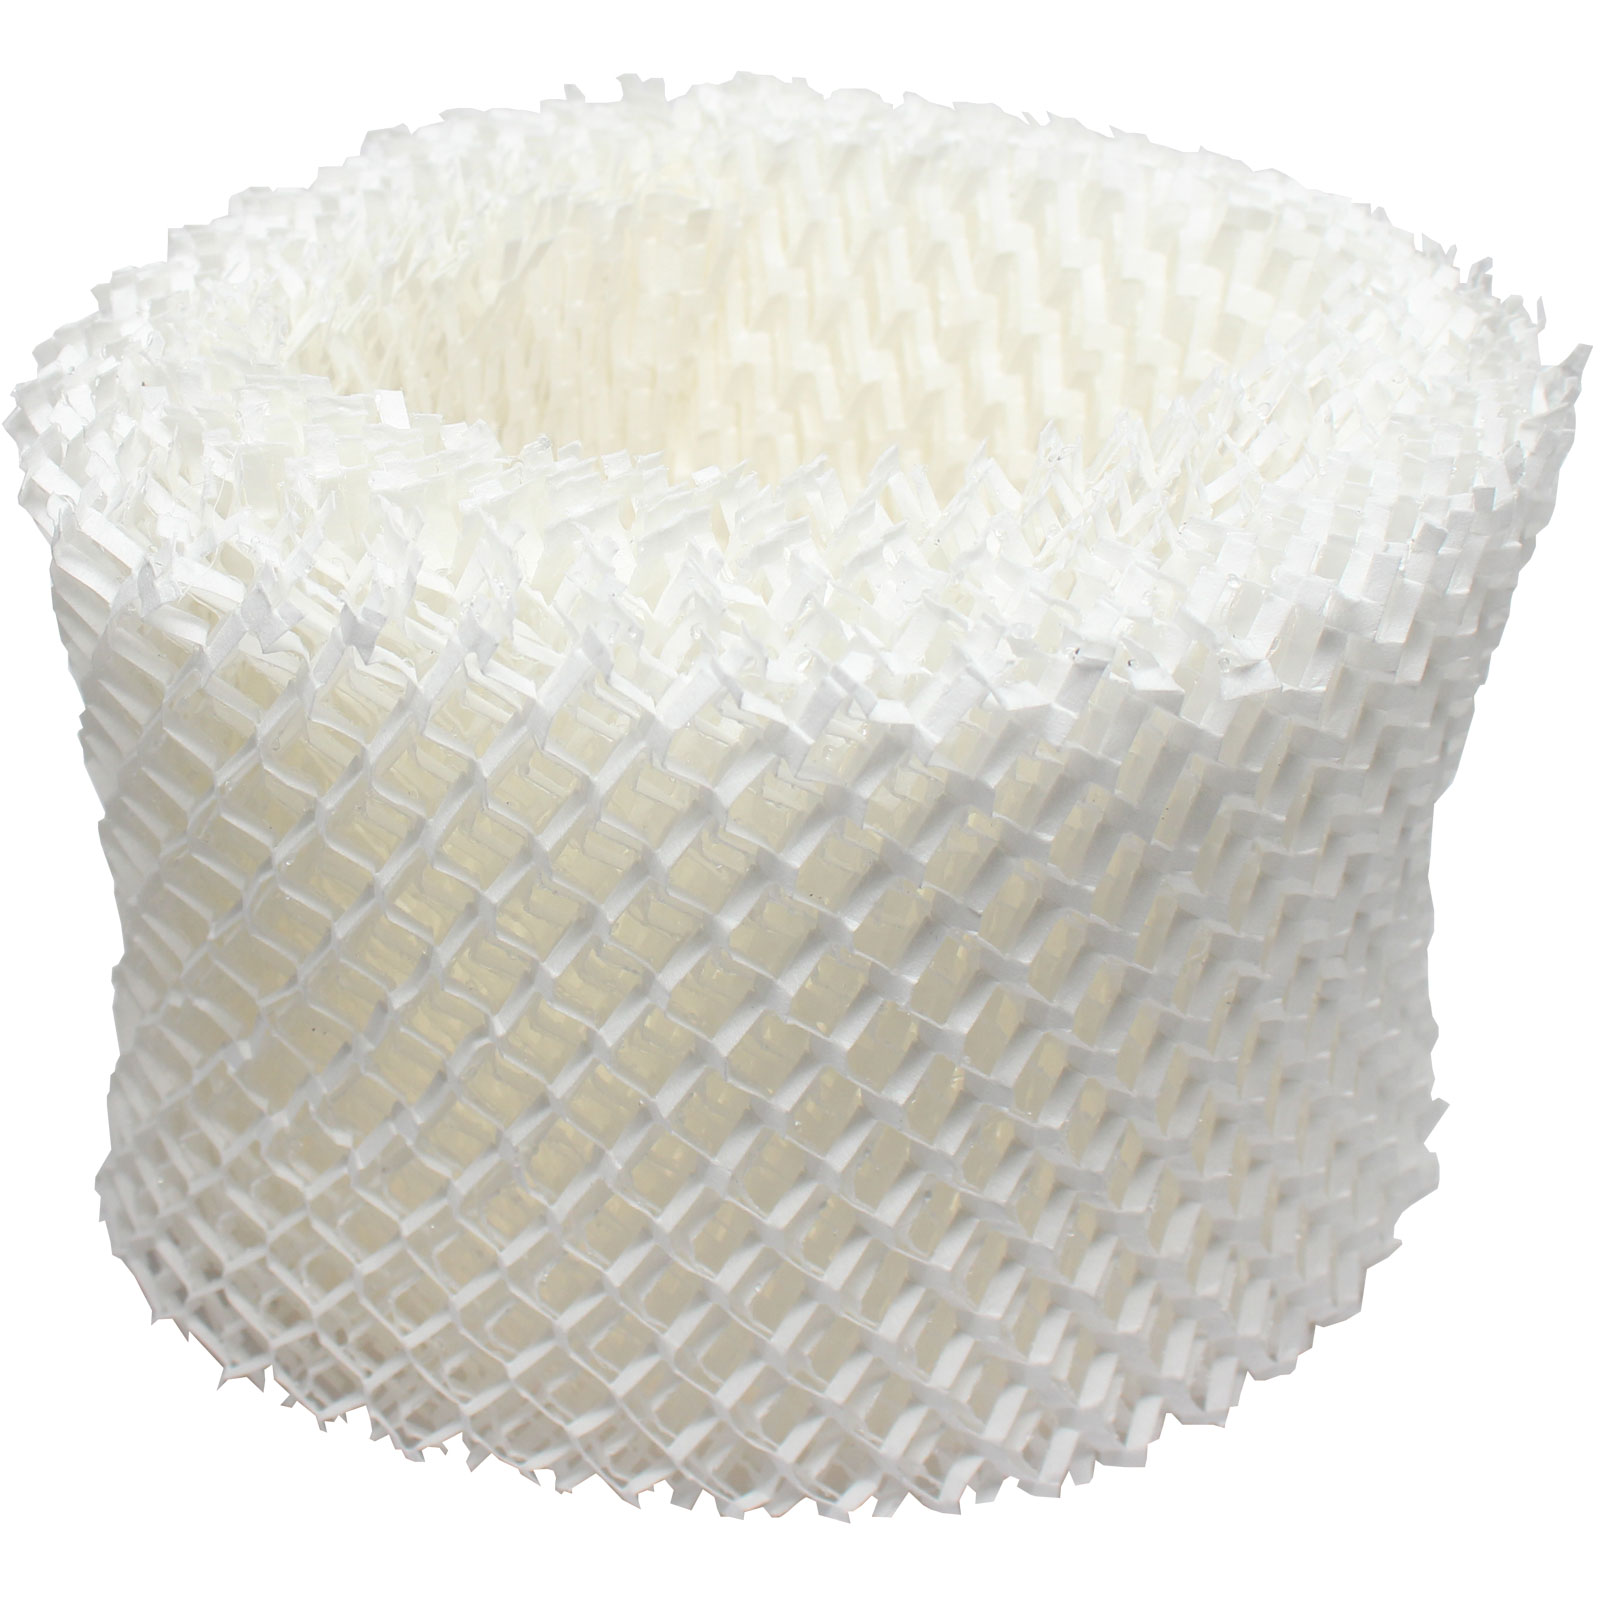 Replacement Honeywell HCM-646 Humidifier Filter - Compatible Honeywell HAC-504, HAC-504AW Air Filter - image 4 of 4